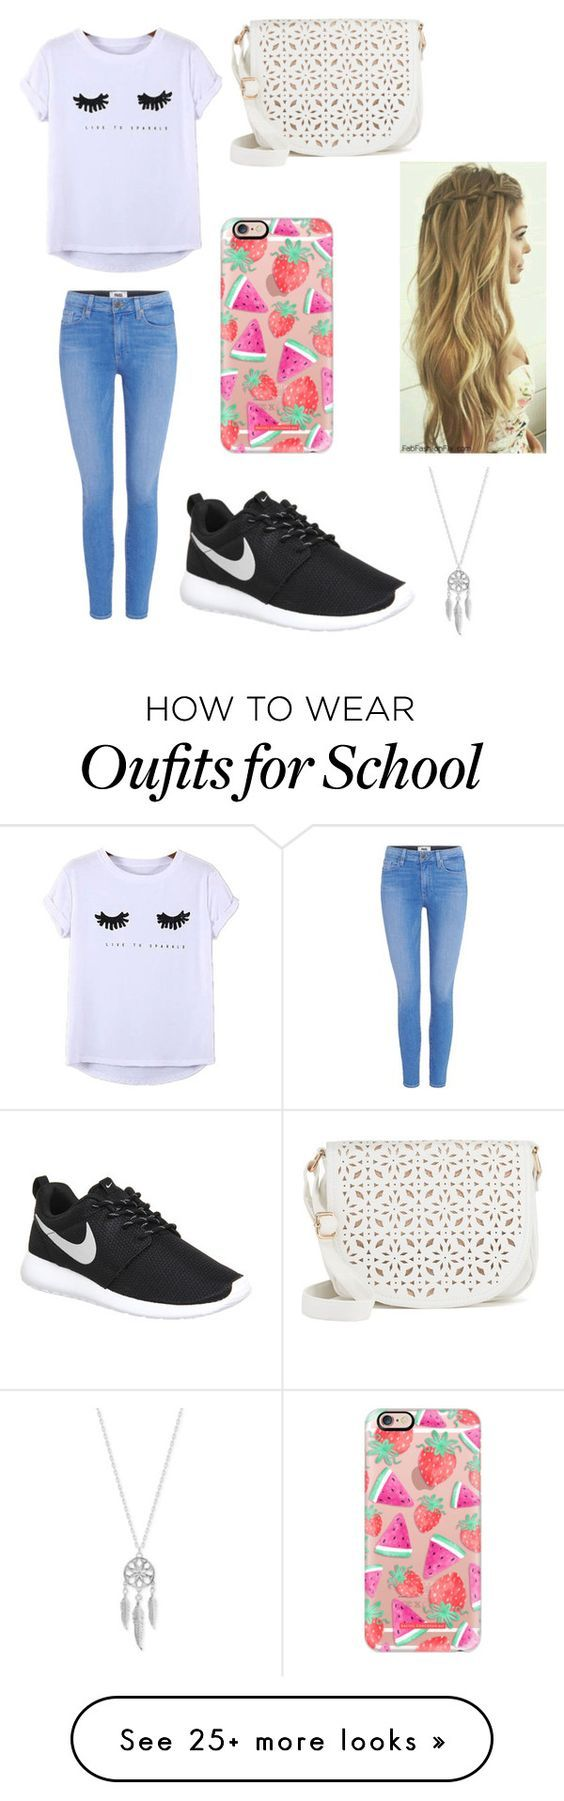 School outfits!